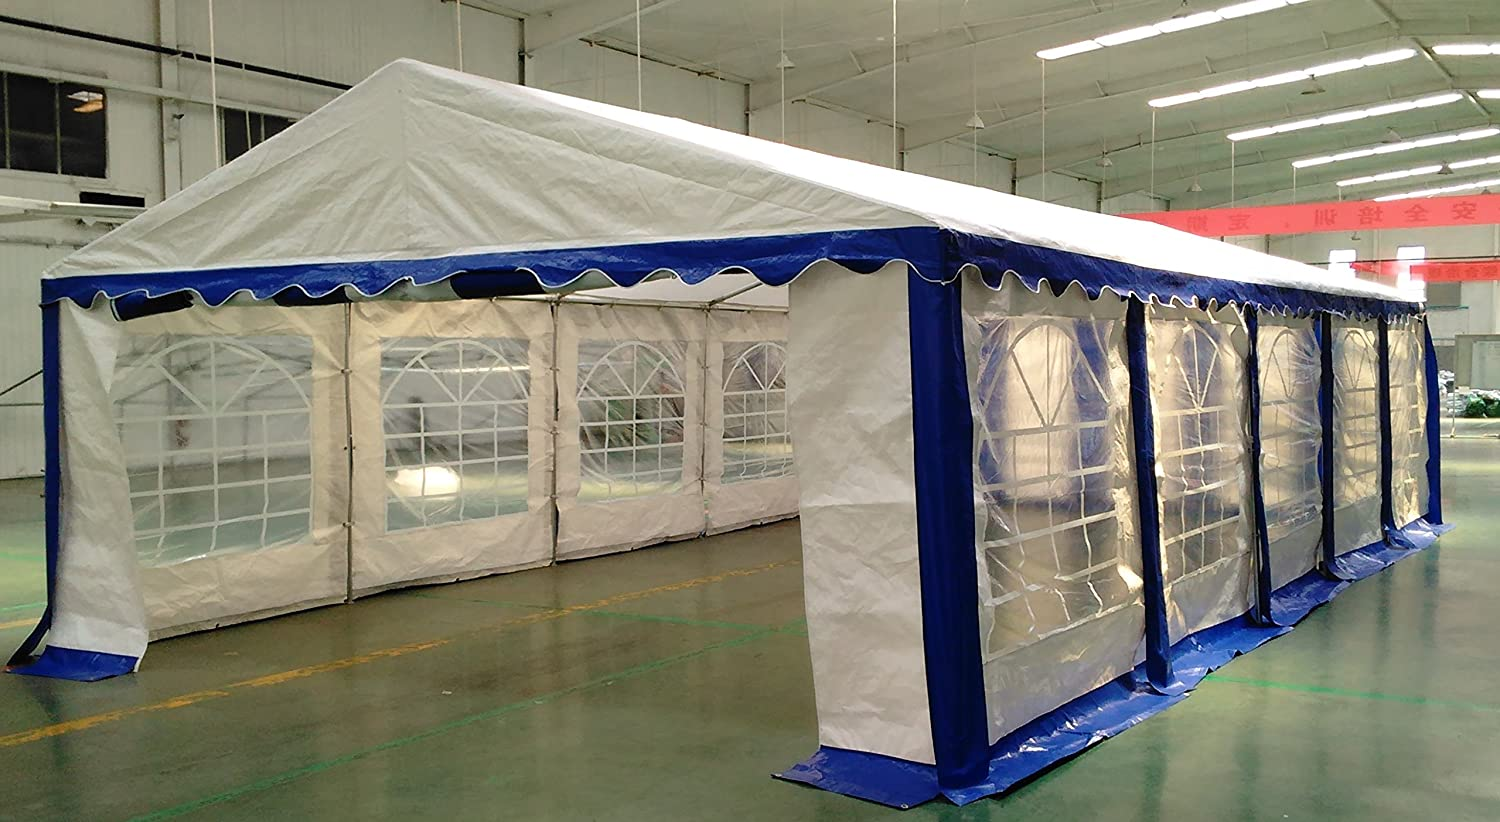 Amazon.com American Phoenix Canopy Tent 15x30 foot Large White Party Tent Gazebo Canopy Commercial Fair Shelter Car Shelter Wedding Events Party Heavy Duty ... & Amazon.com: American Phoenix Canopy Tent 15x30 foot Large White ...